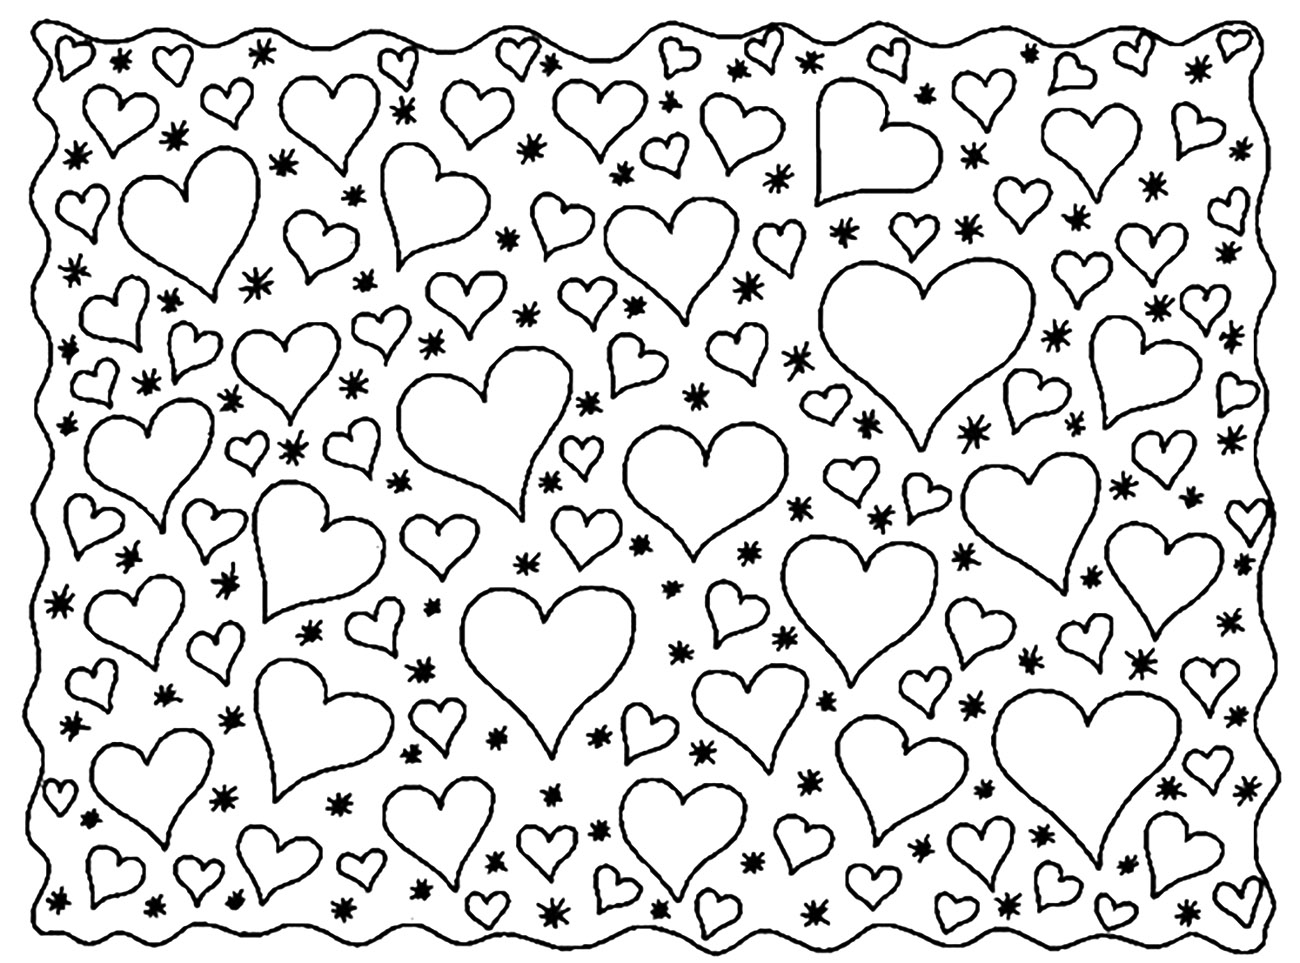 A lot of Hearts to color